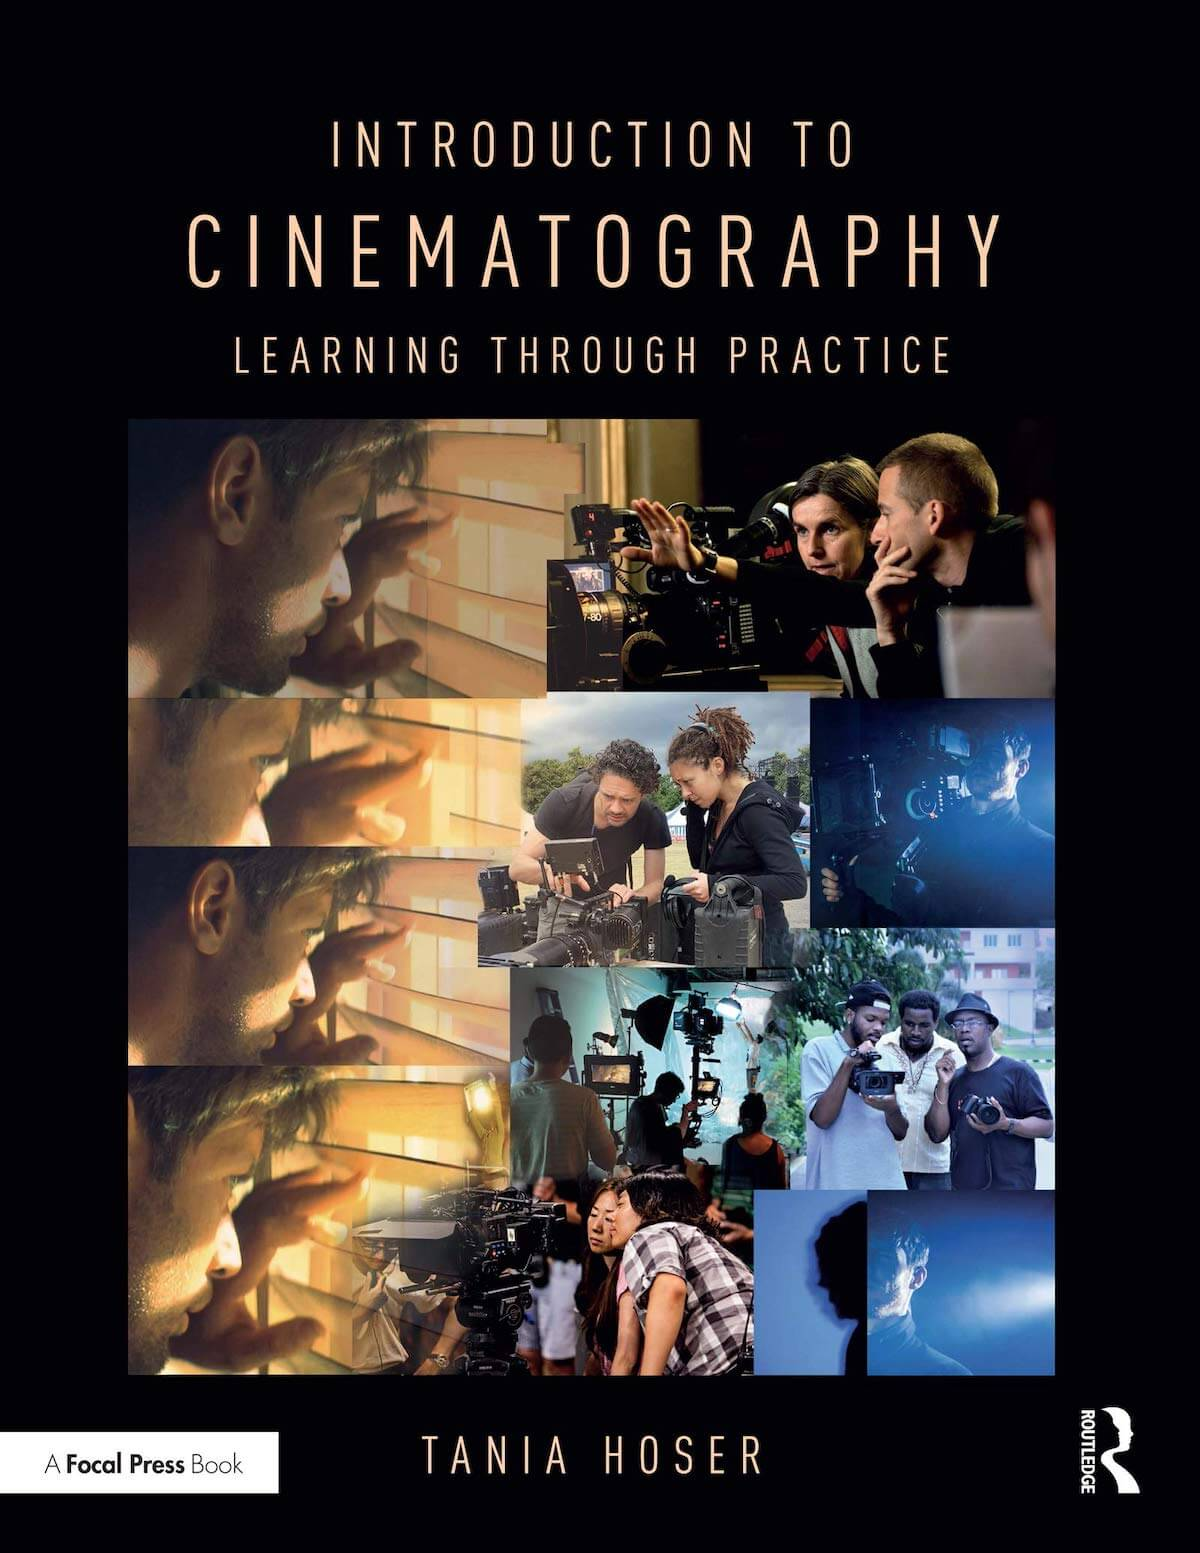 Best Cinematography Books - Tania Hoser - Introduction to Cinematography